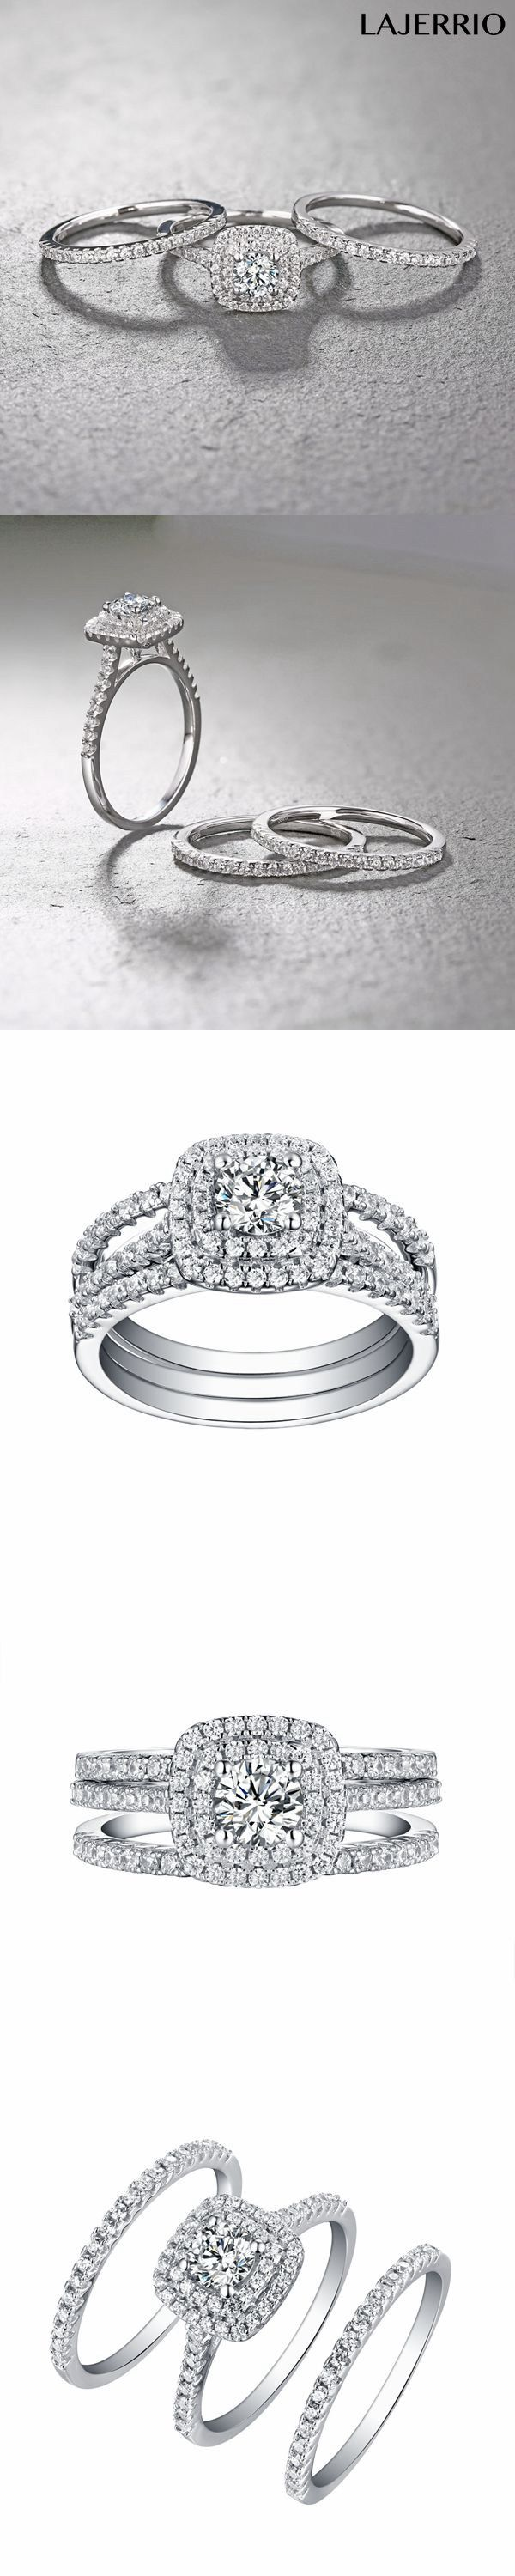 Lajerrio Jewelry Round Cut White Sapphire 3 Piece 925 Sterling Silver Halo Ring Sets